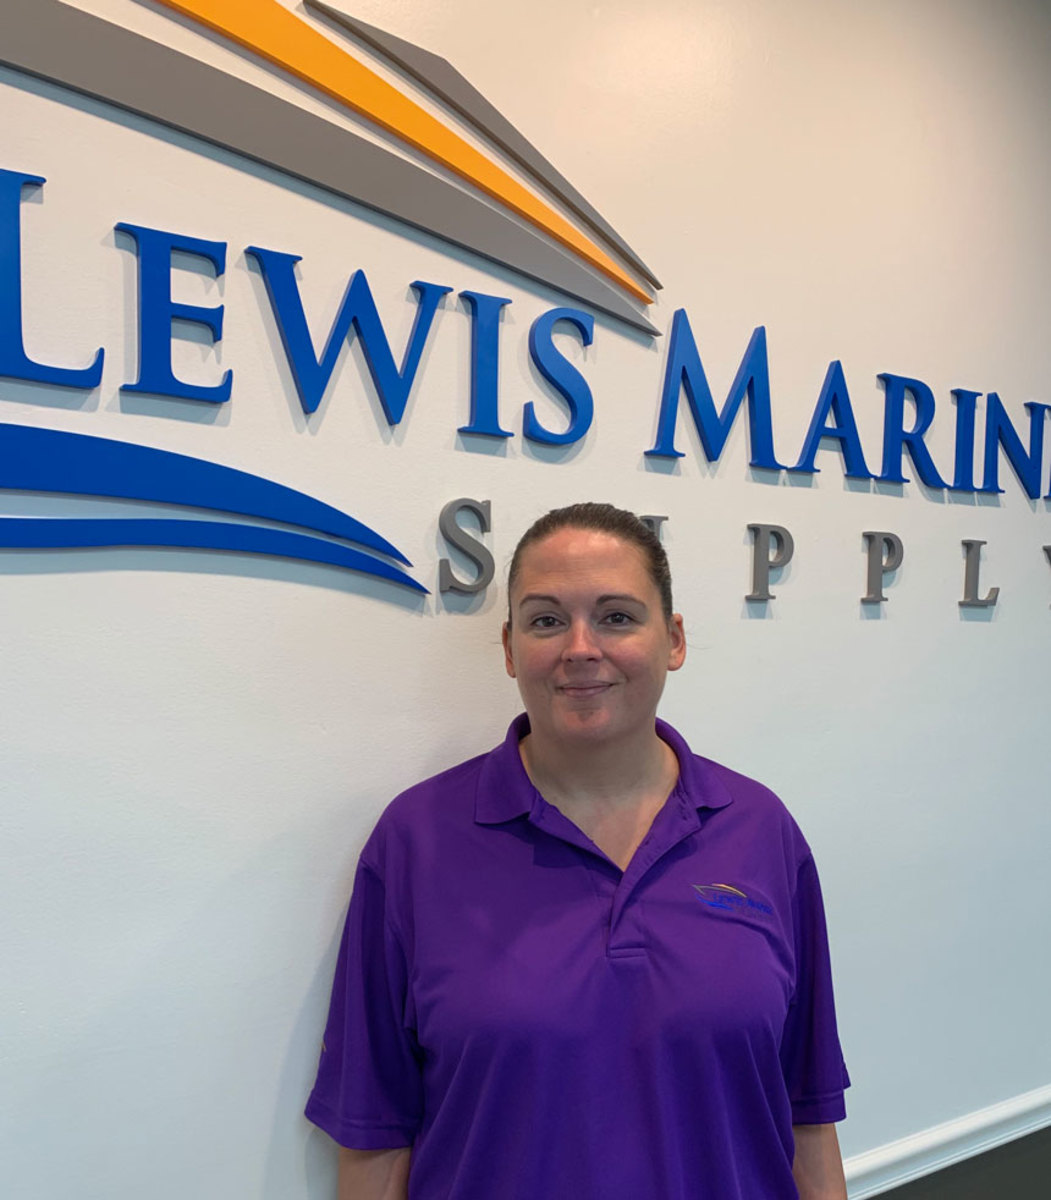 Chelsea Beyer, President, Lewis Marine Supply